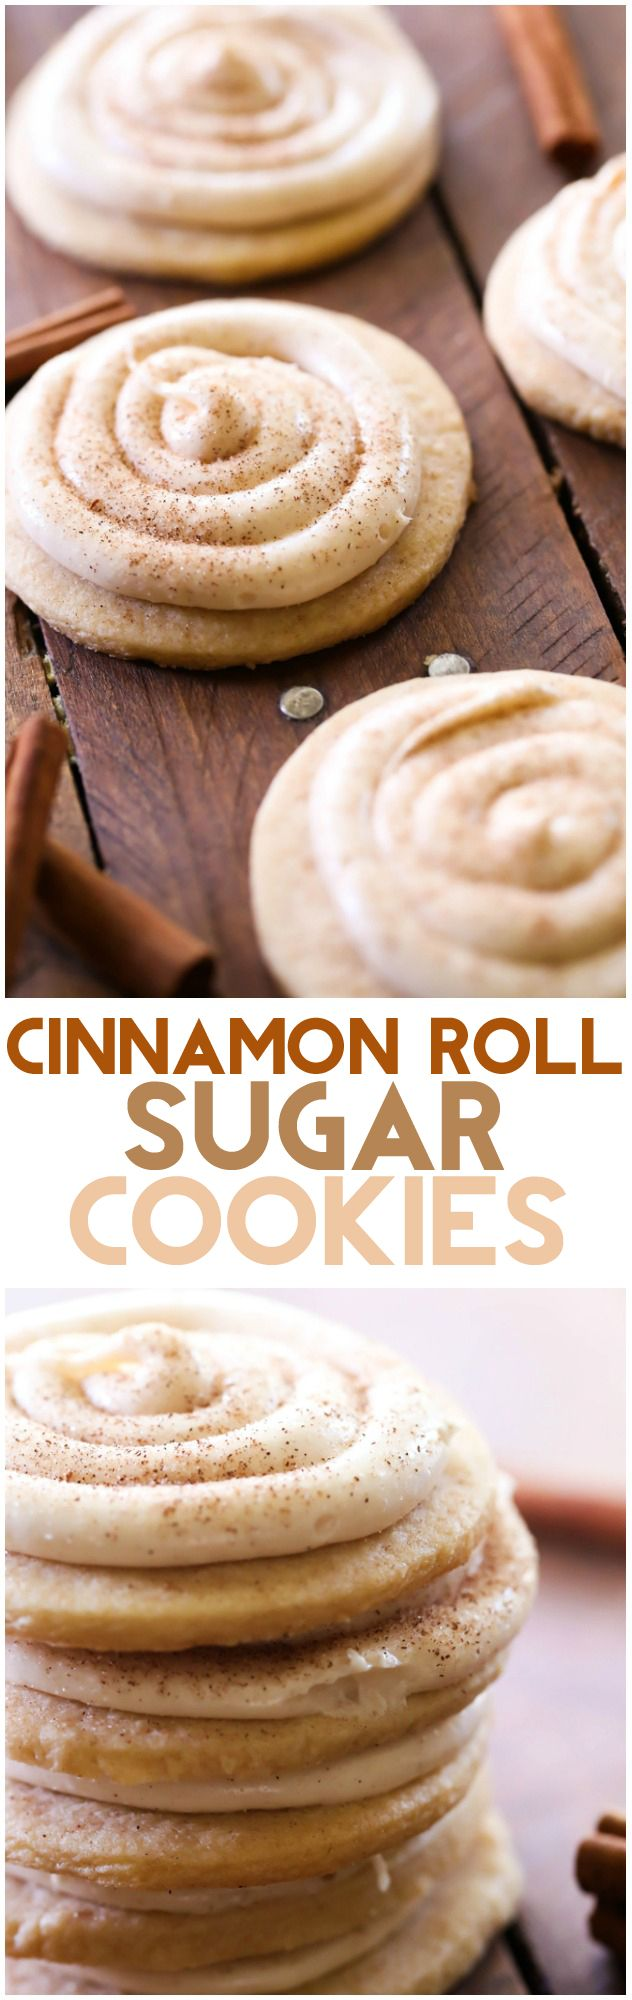 Cinnamon Roll Sugar Cookies... These cookies taste JUST like a cinnamon roll! The cookies are soft and chewy and the frosting is FABULOUS!